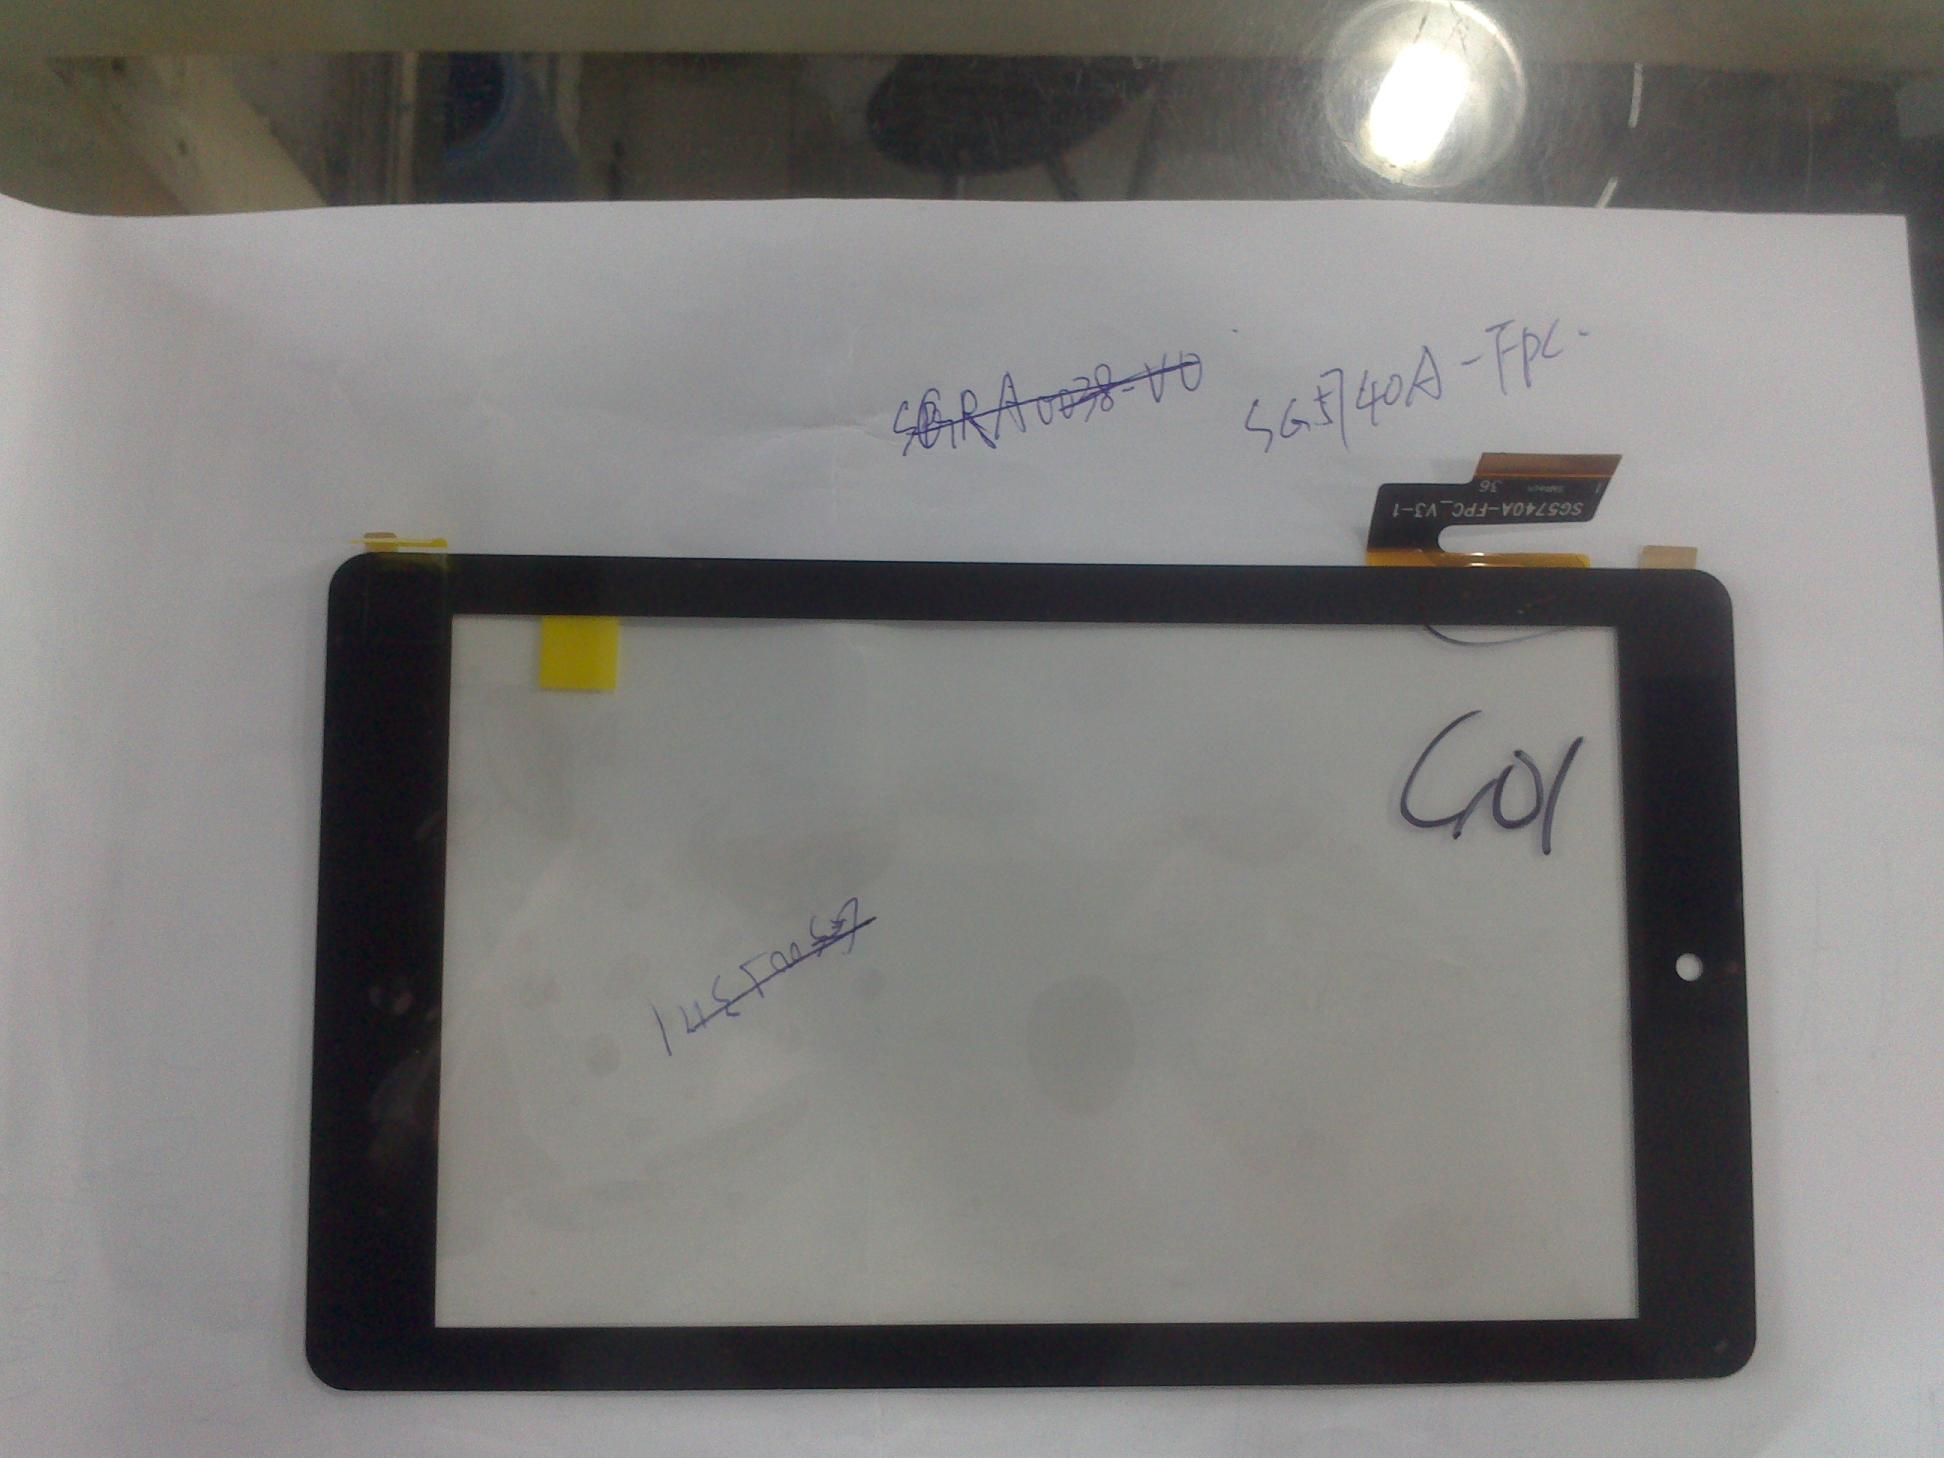 Запчасти для мобильных телефонов 7 inch new handwriting Tablet capacitive touch screen screen screen number is sg5740a/fpc_v3/1  SG5740A-FPC_V3-1 black new 8 tablet pc yj314fpc v0 fhx authentic touch screen handwriting screen multi point capacitive screen external screen